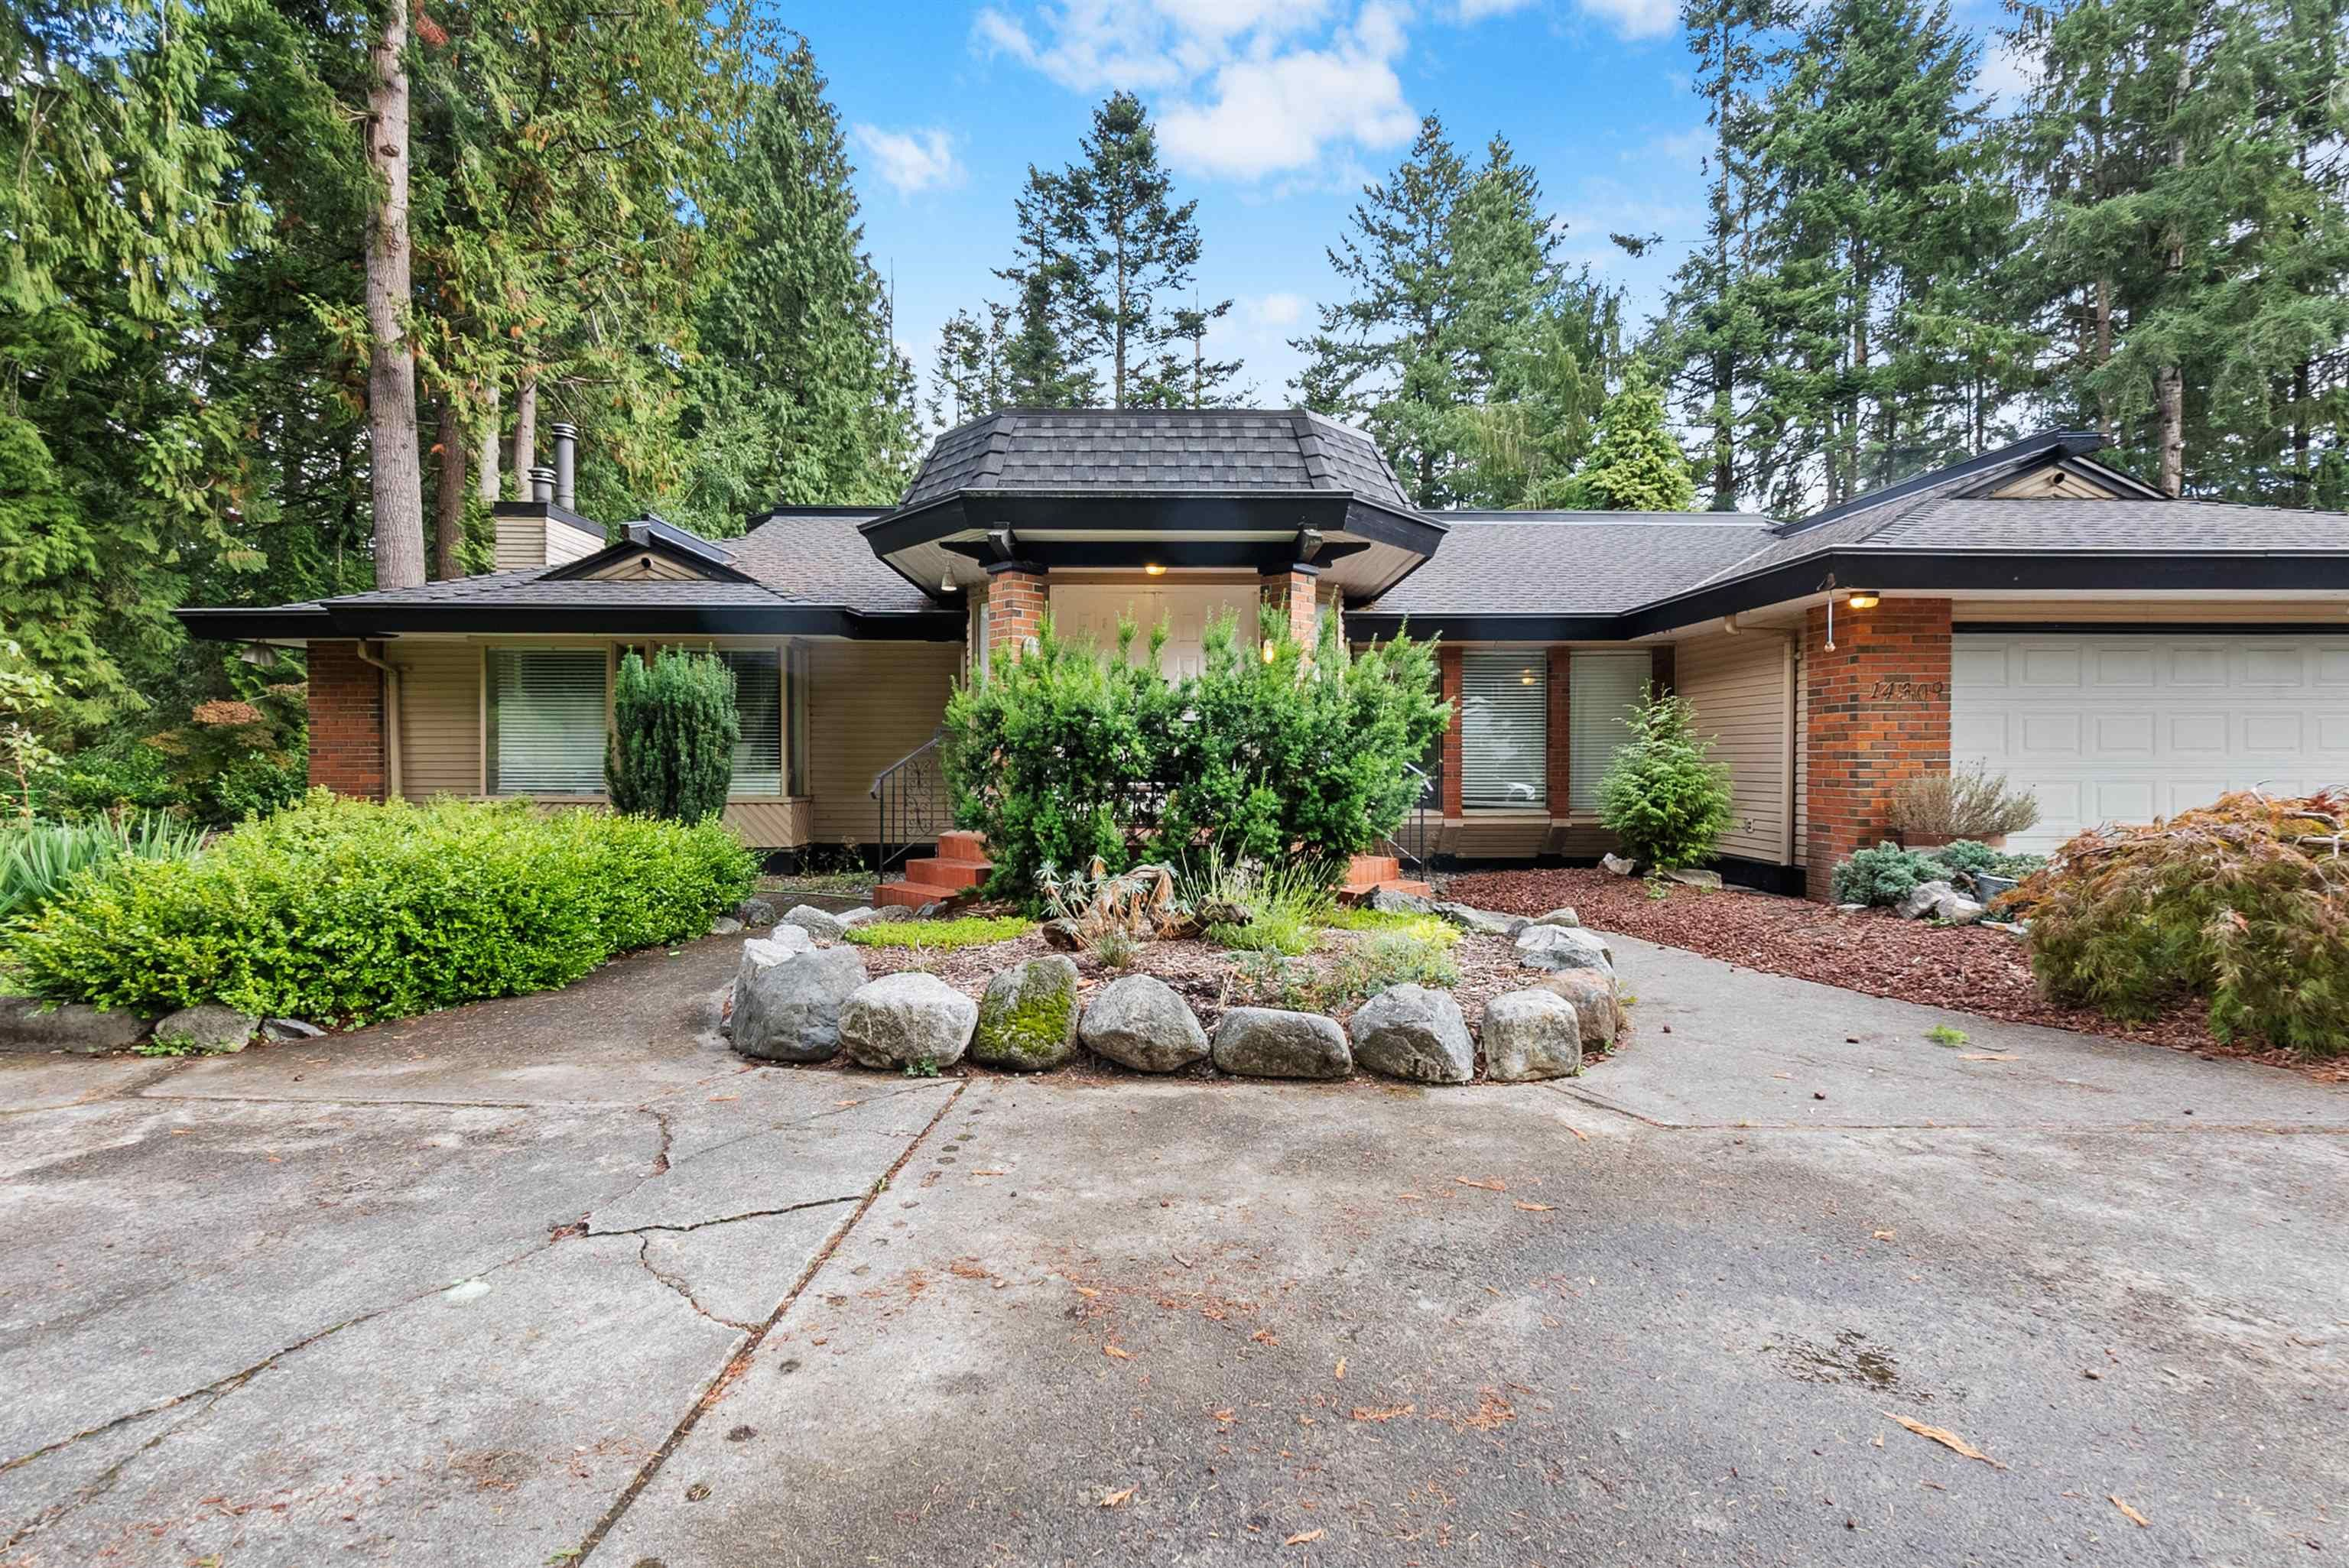 """Main Photo: 14309 GREENCREST Drive in Surrey: Elgin Chantrell House for sale in """"Elgin Creek Estates"""" (South Surrey White Rock)  : MLS®# R2621314"""